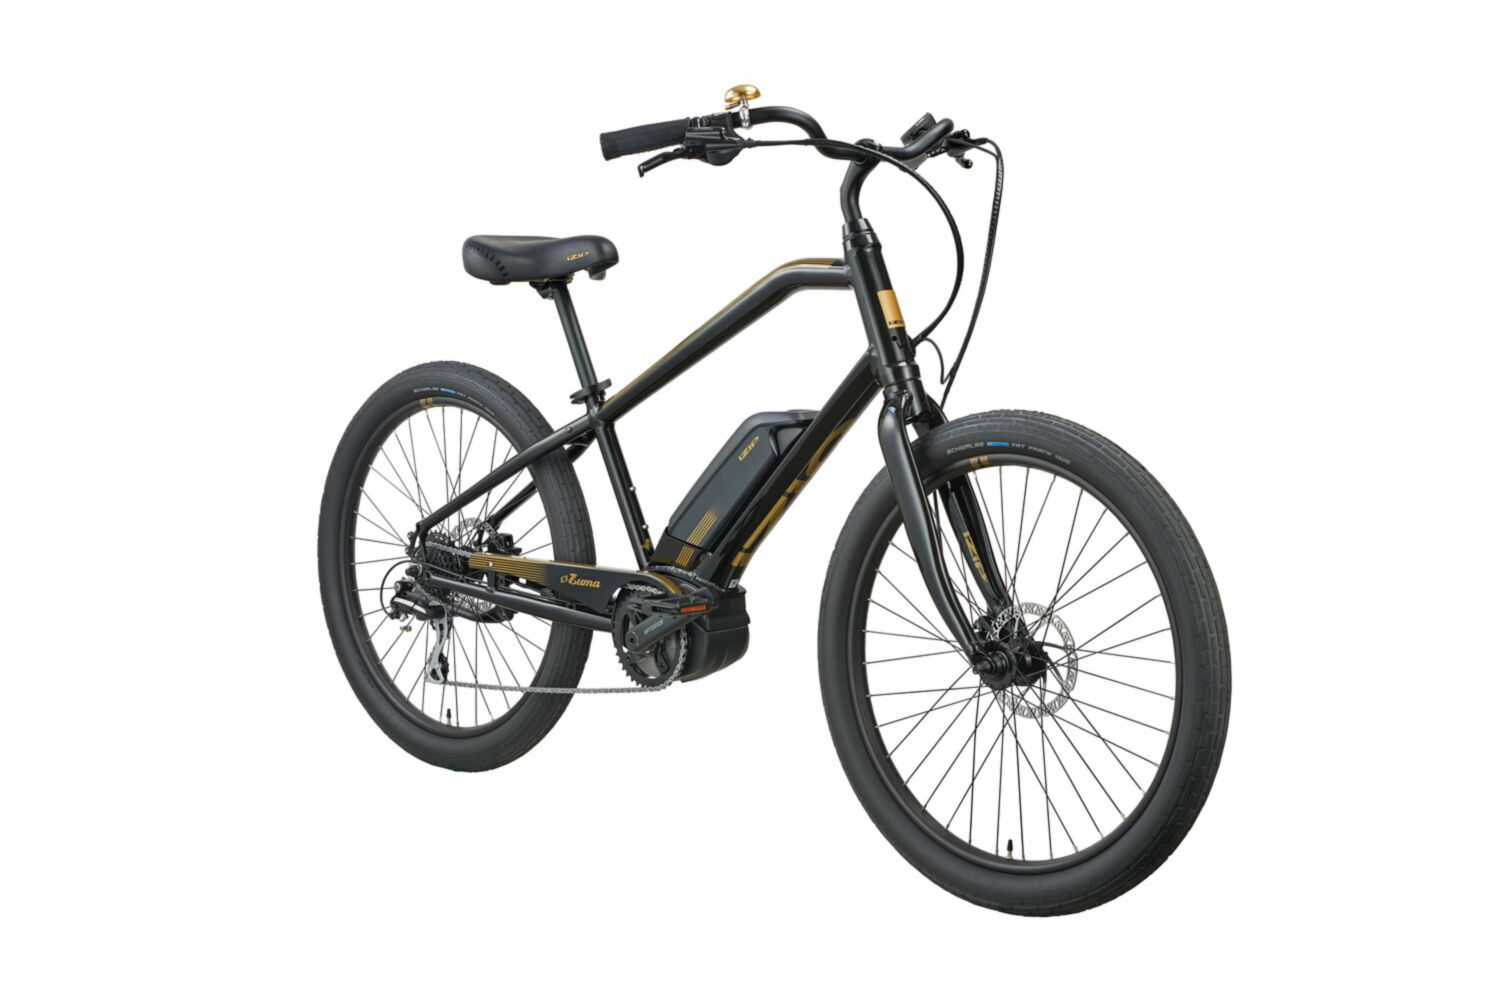 Izip E3 Zuma Luxe Step Over Electric Bike In Black At The